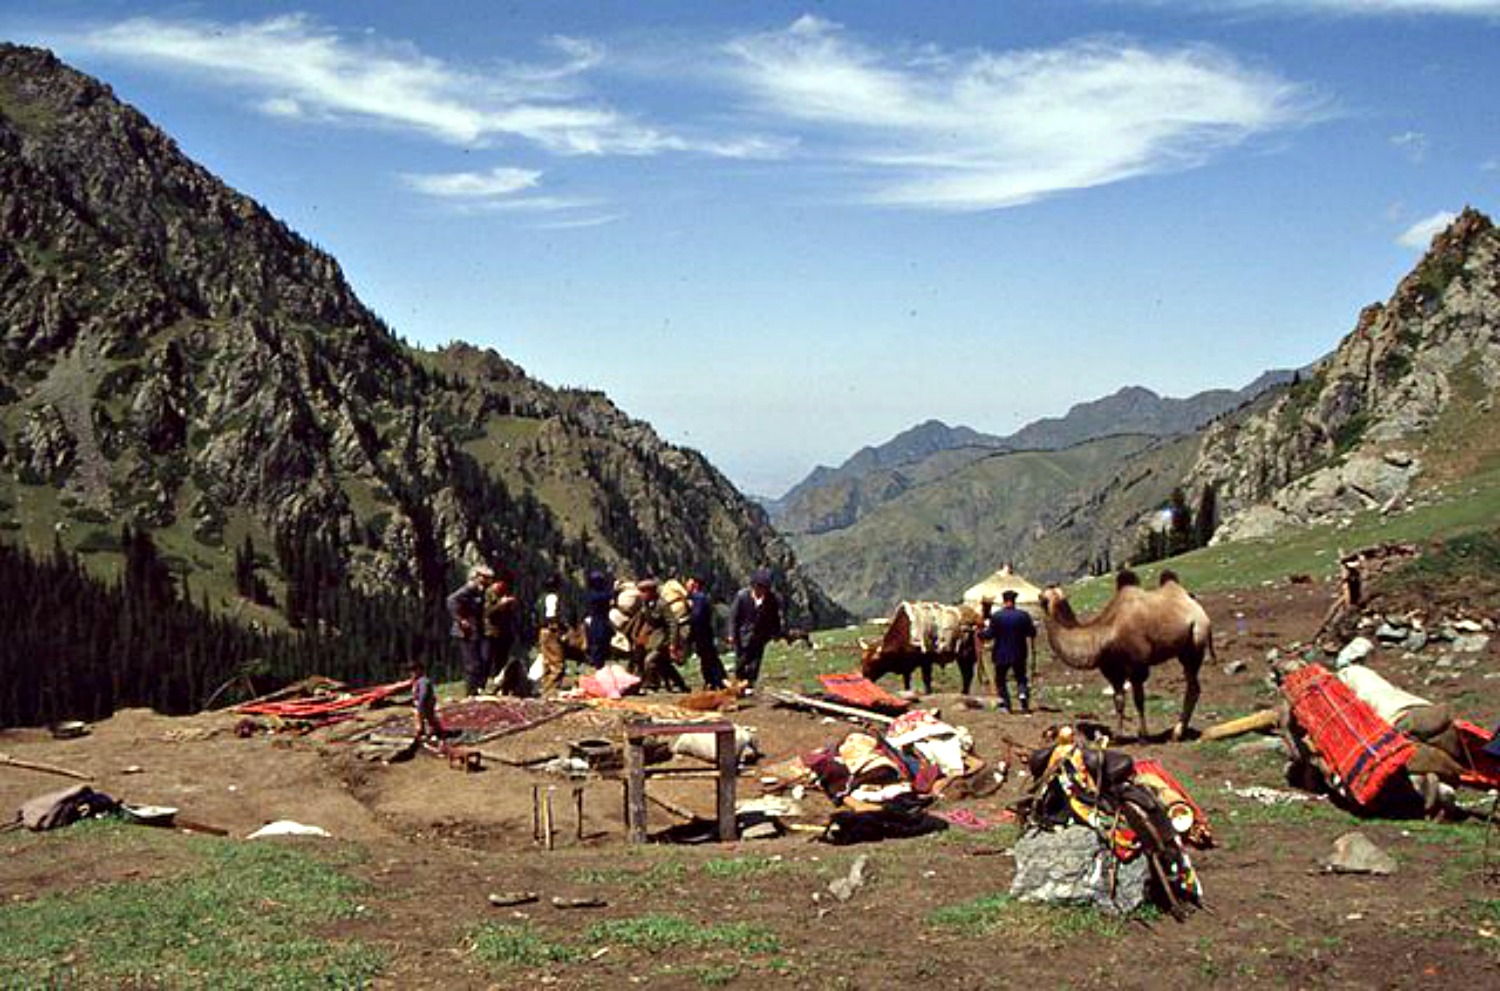 The Silk Road. Photo: fdecomite (Flickr)